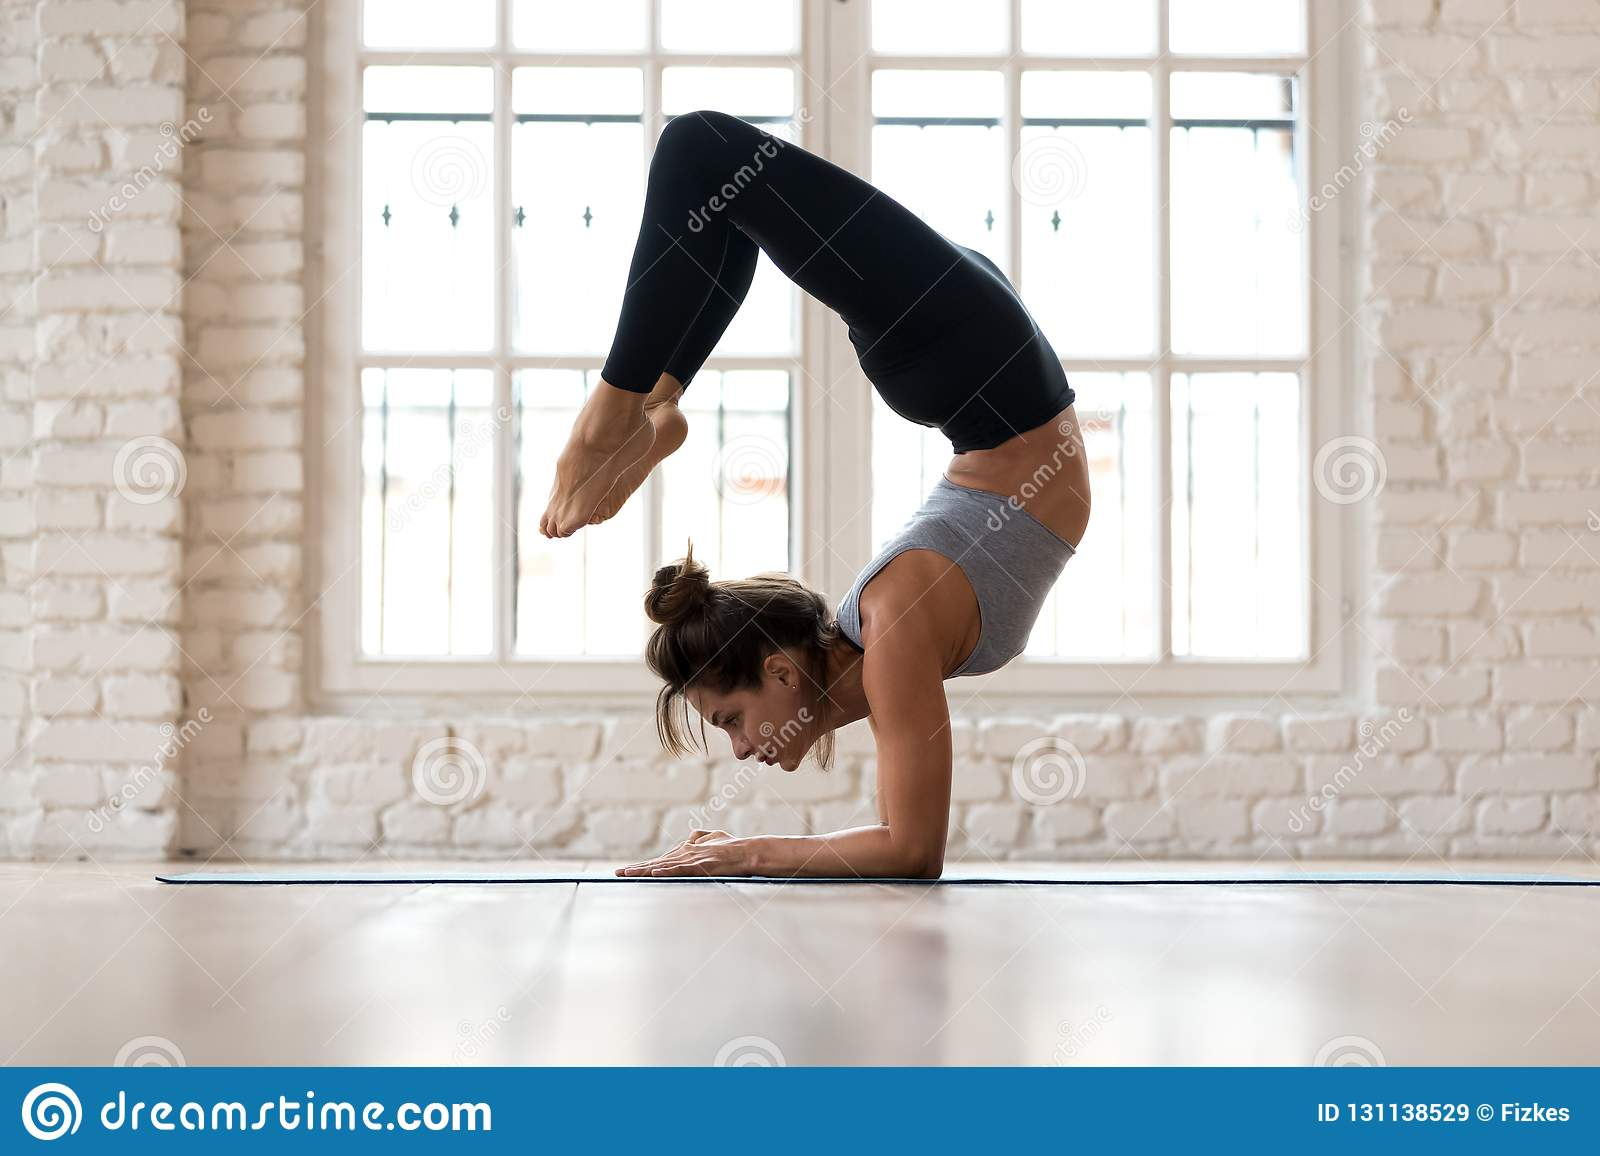 acd0809242392 Young Sporty Attractive Woman Practicing Yoga Scorpion Pose Stock ...